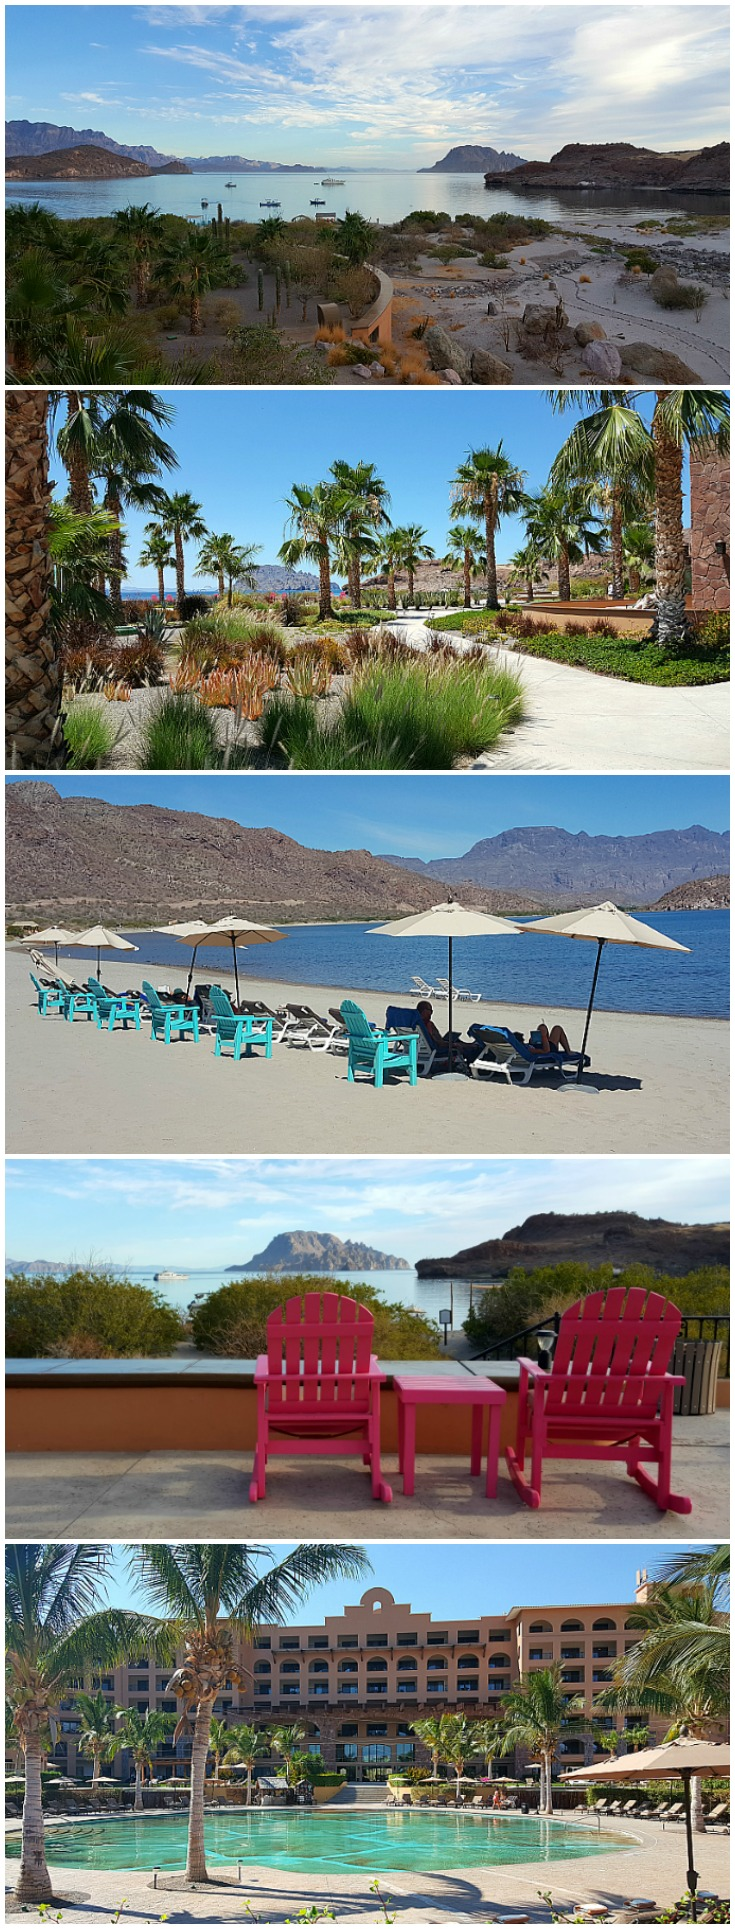 Villa del Palmar Islands of Loreto, Baja California Sur, Mexico - Golf and Spa Resort